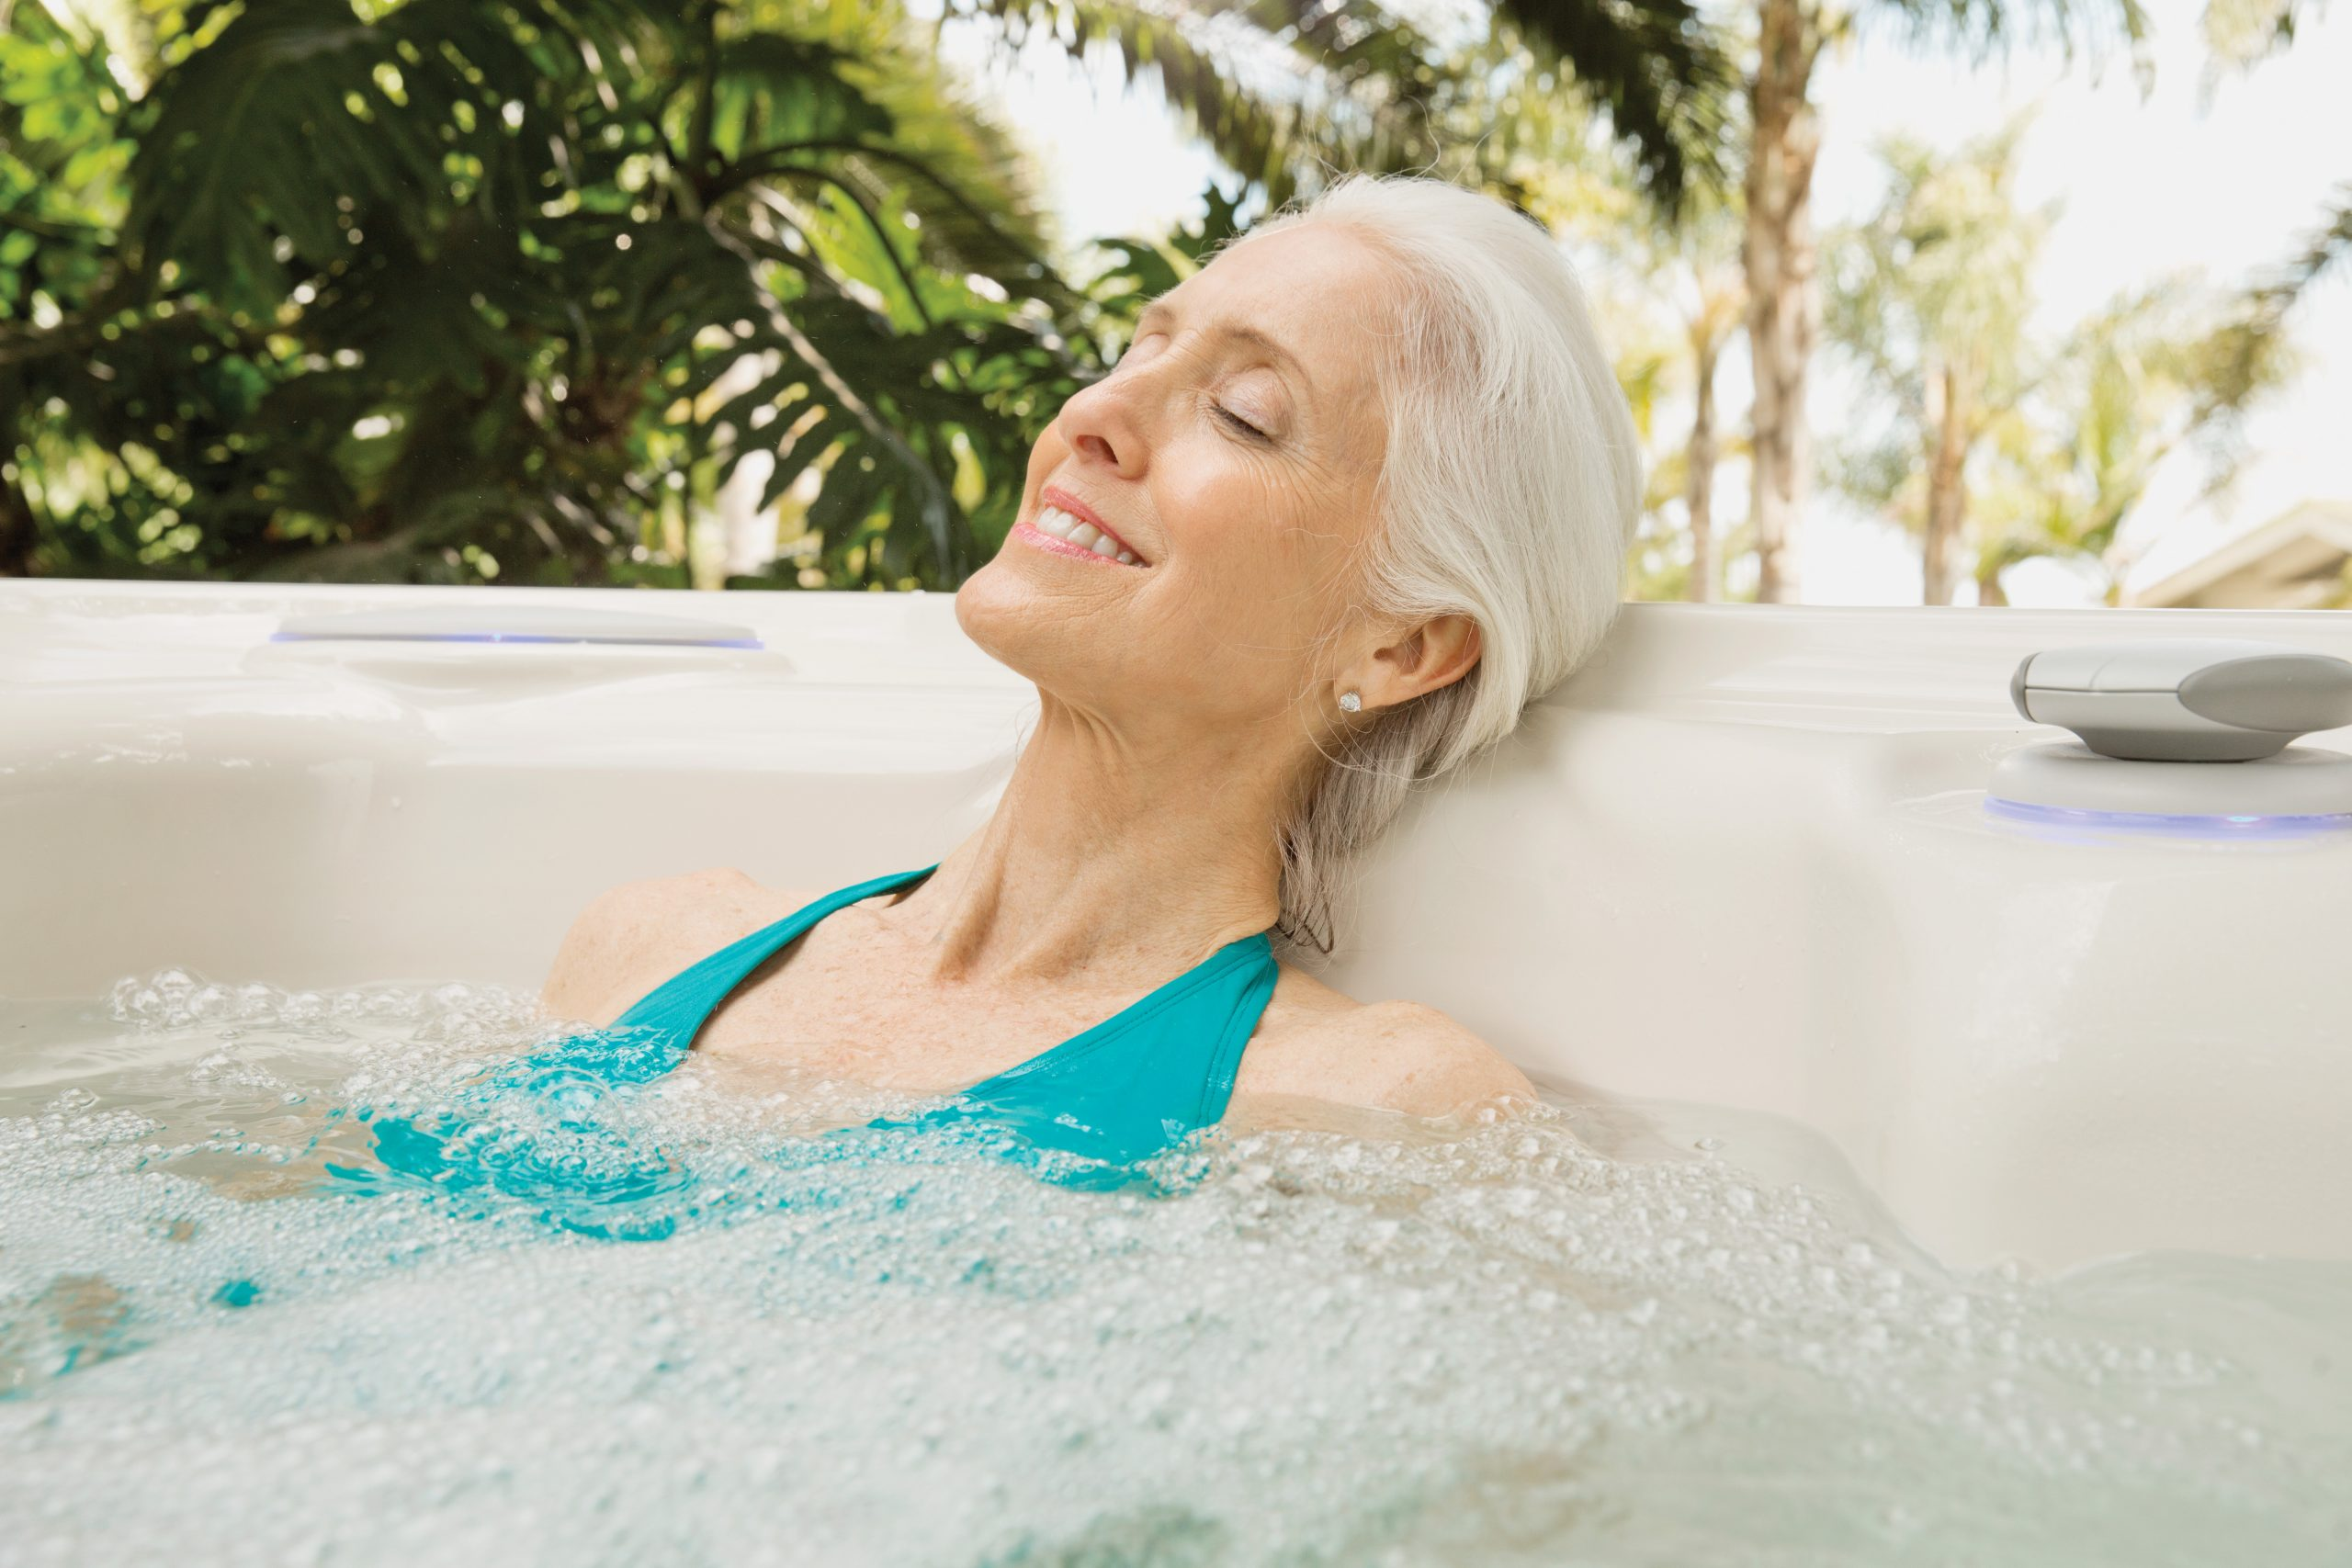 Stress & Anxiety: Can a Hot Tub Help?